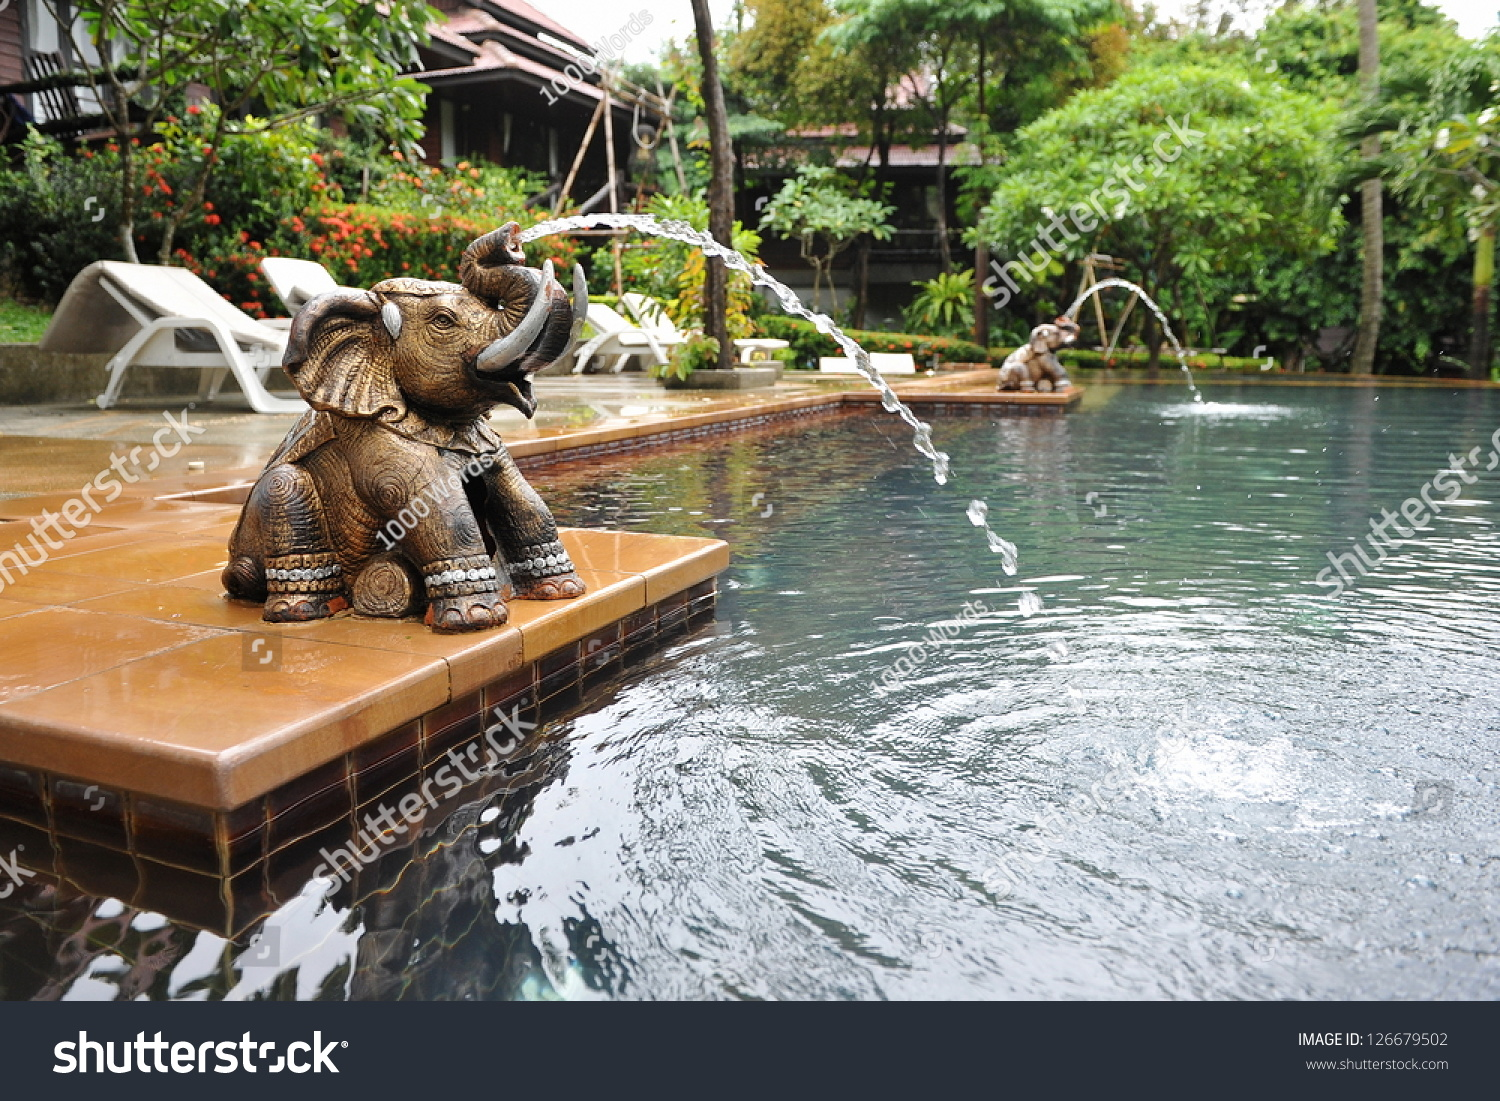 Luxury Backyard Features : Luxury Outdoor Swimming Pool and an Elephant Water Feature at a Thai